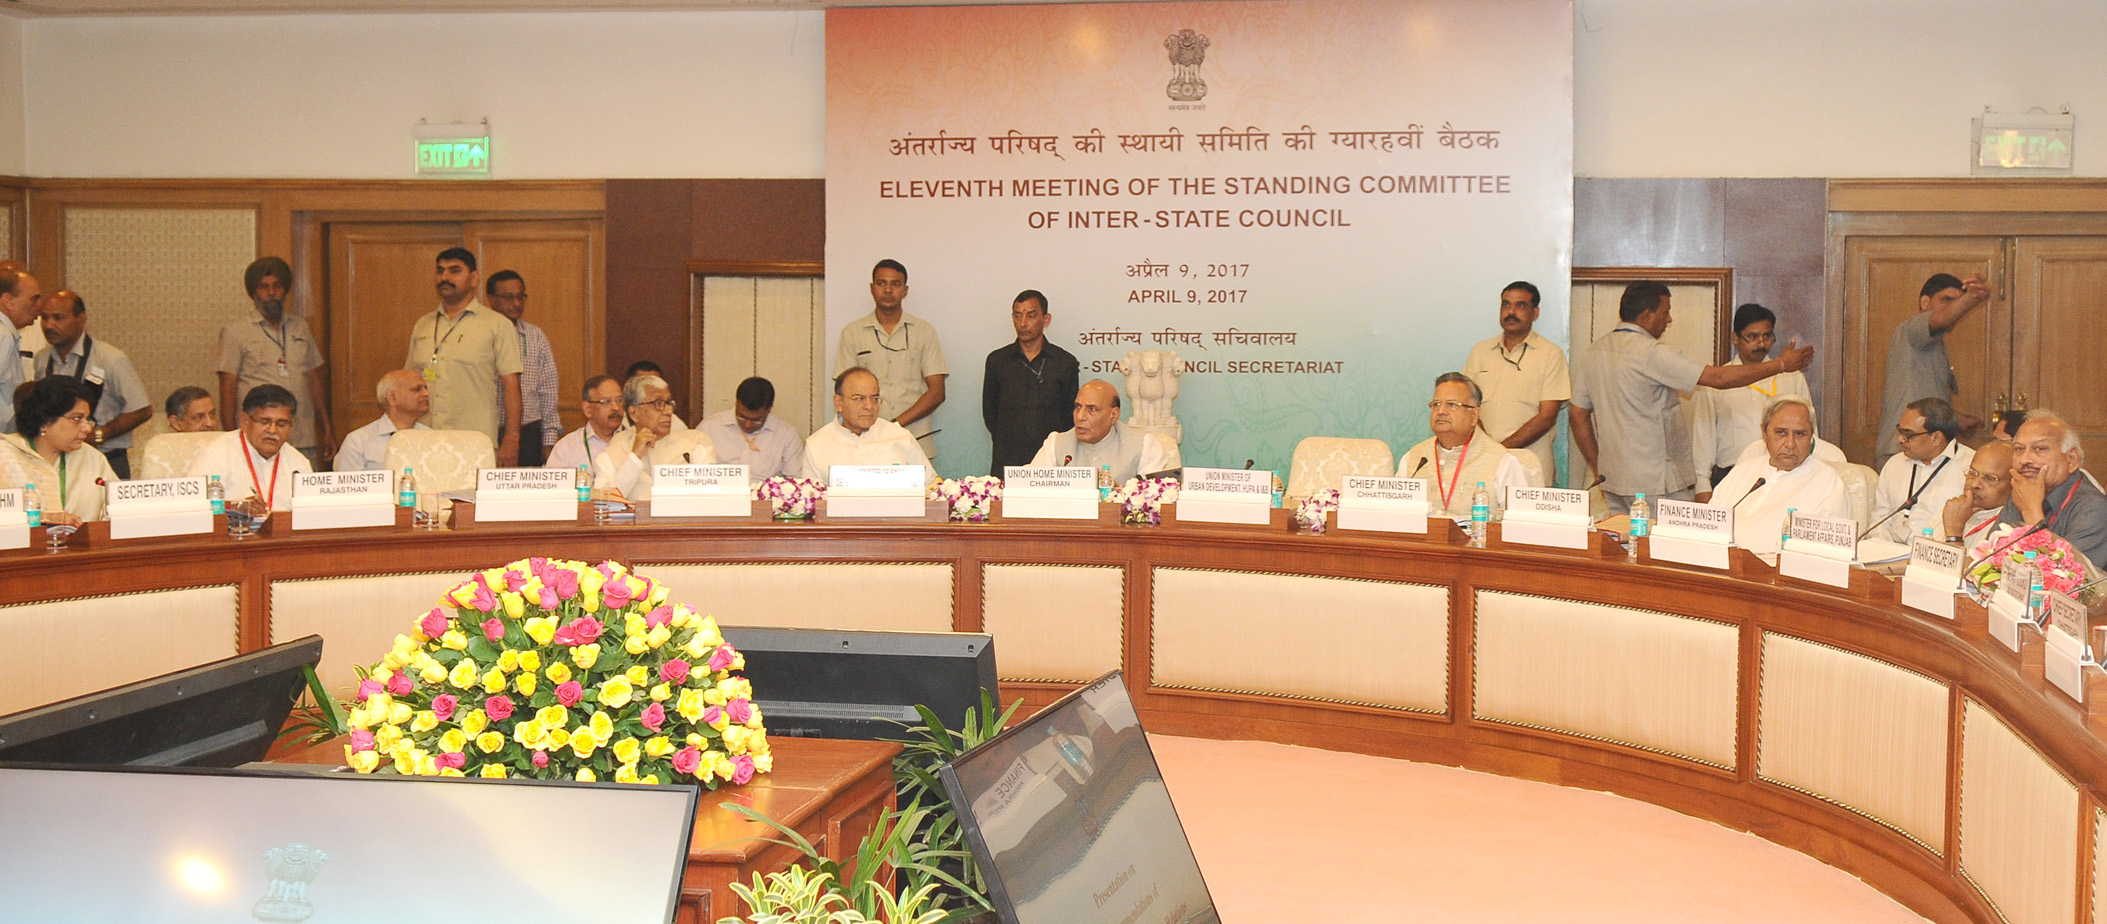 The Union Home Minister, Shri Rajnath Singh Union Home Minister Shri Rajnath Singh chairing the 11th Standing Committee meeting of the Inter-State Council, in New Delhi on April 09, 2017. 	The Union Minister for Finance, Corporate Affairs and Defence, Shri Arun Jaitley is also seen.